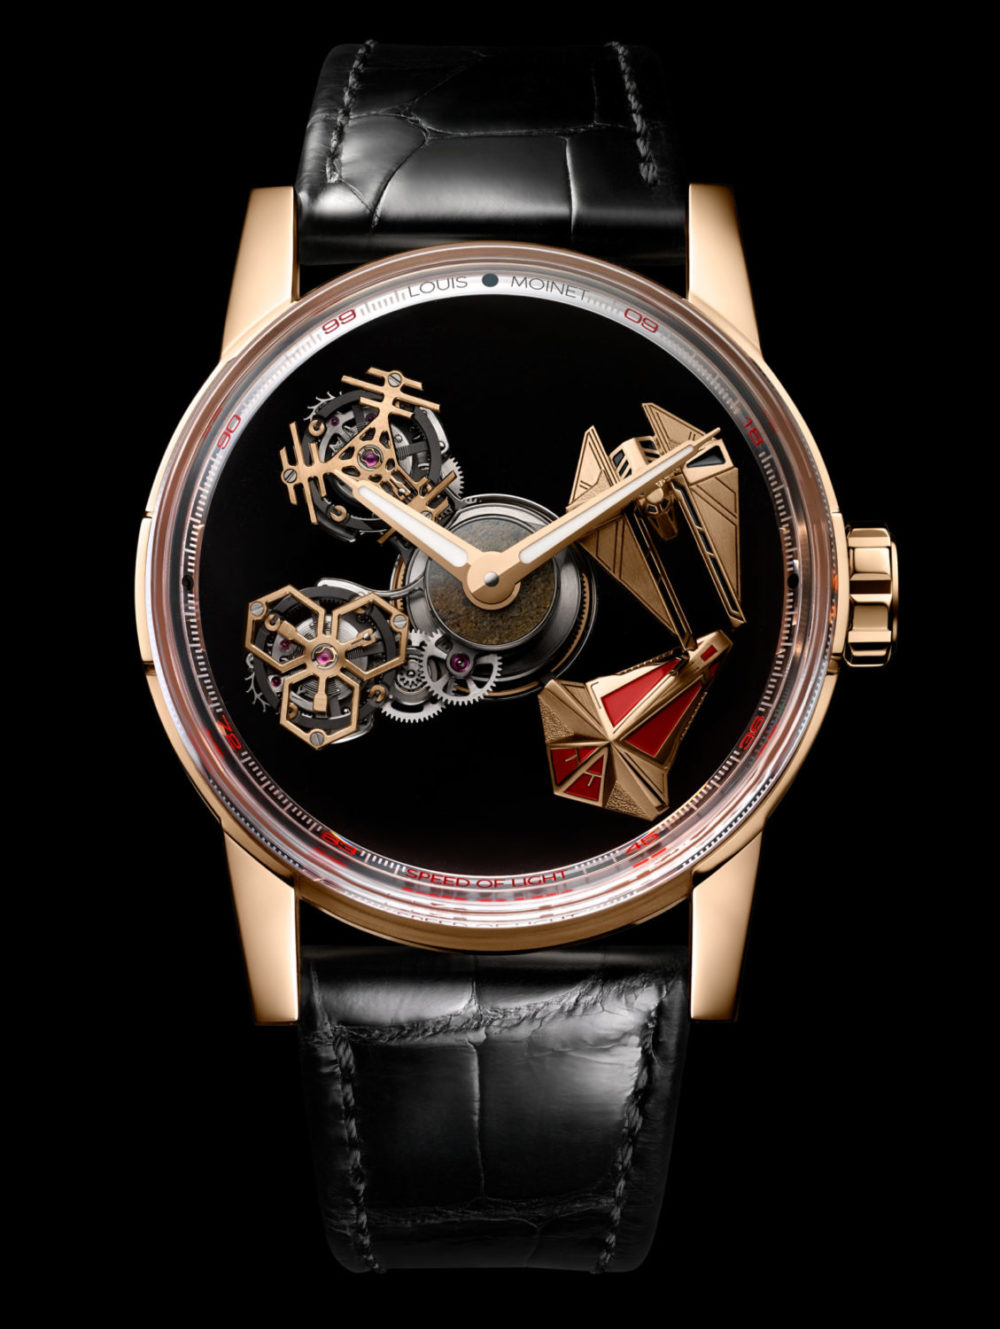 Louis Moinet: The Space Revolution, when innovation is science fiction